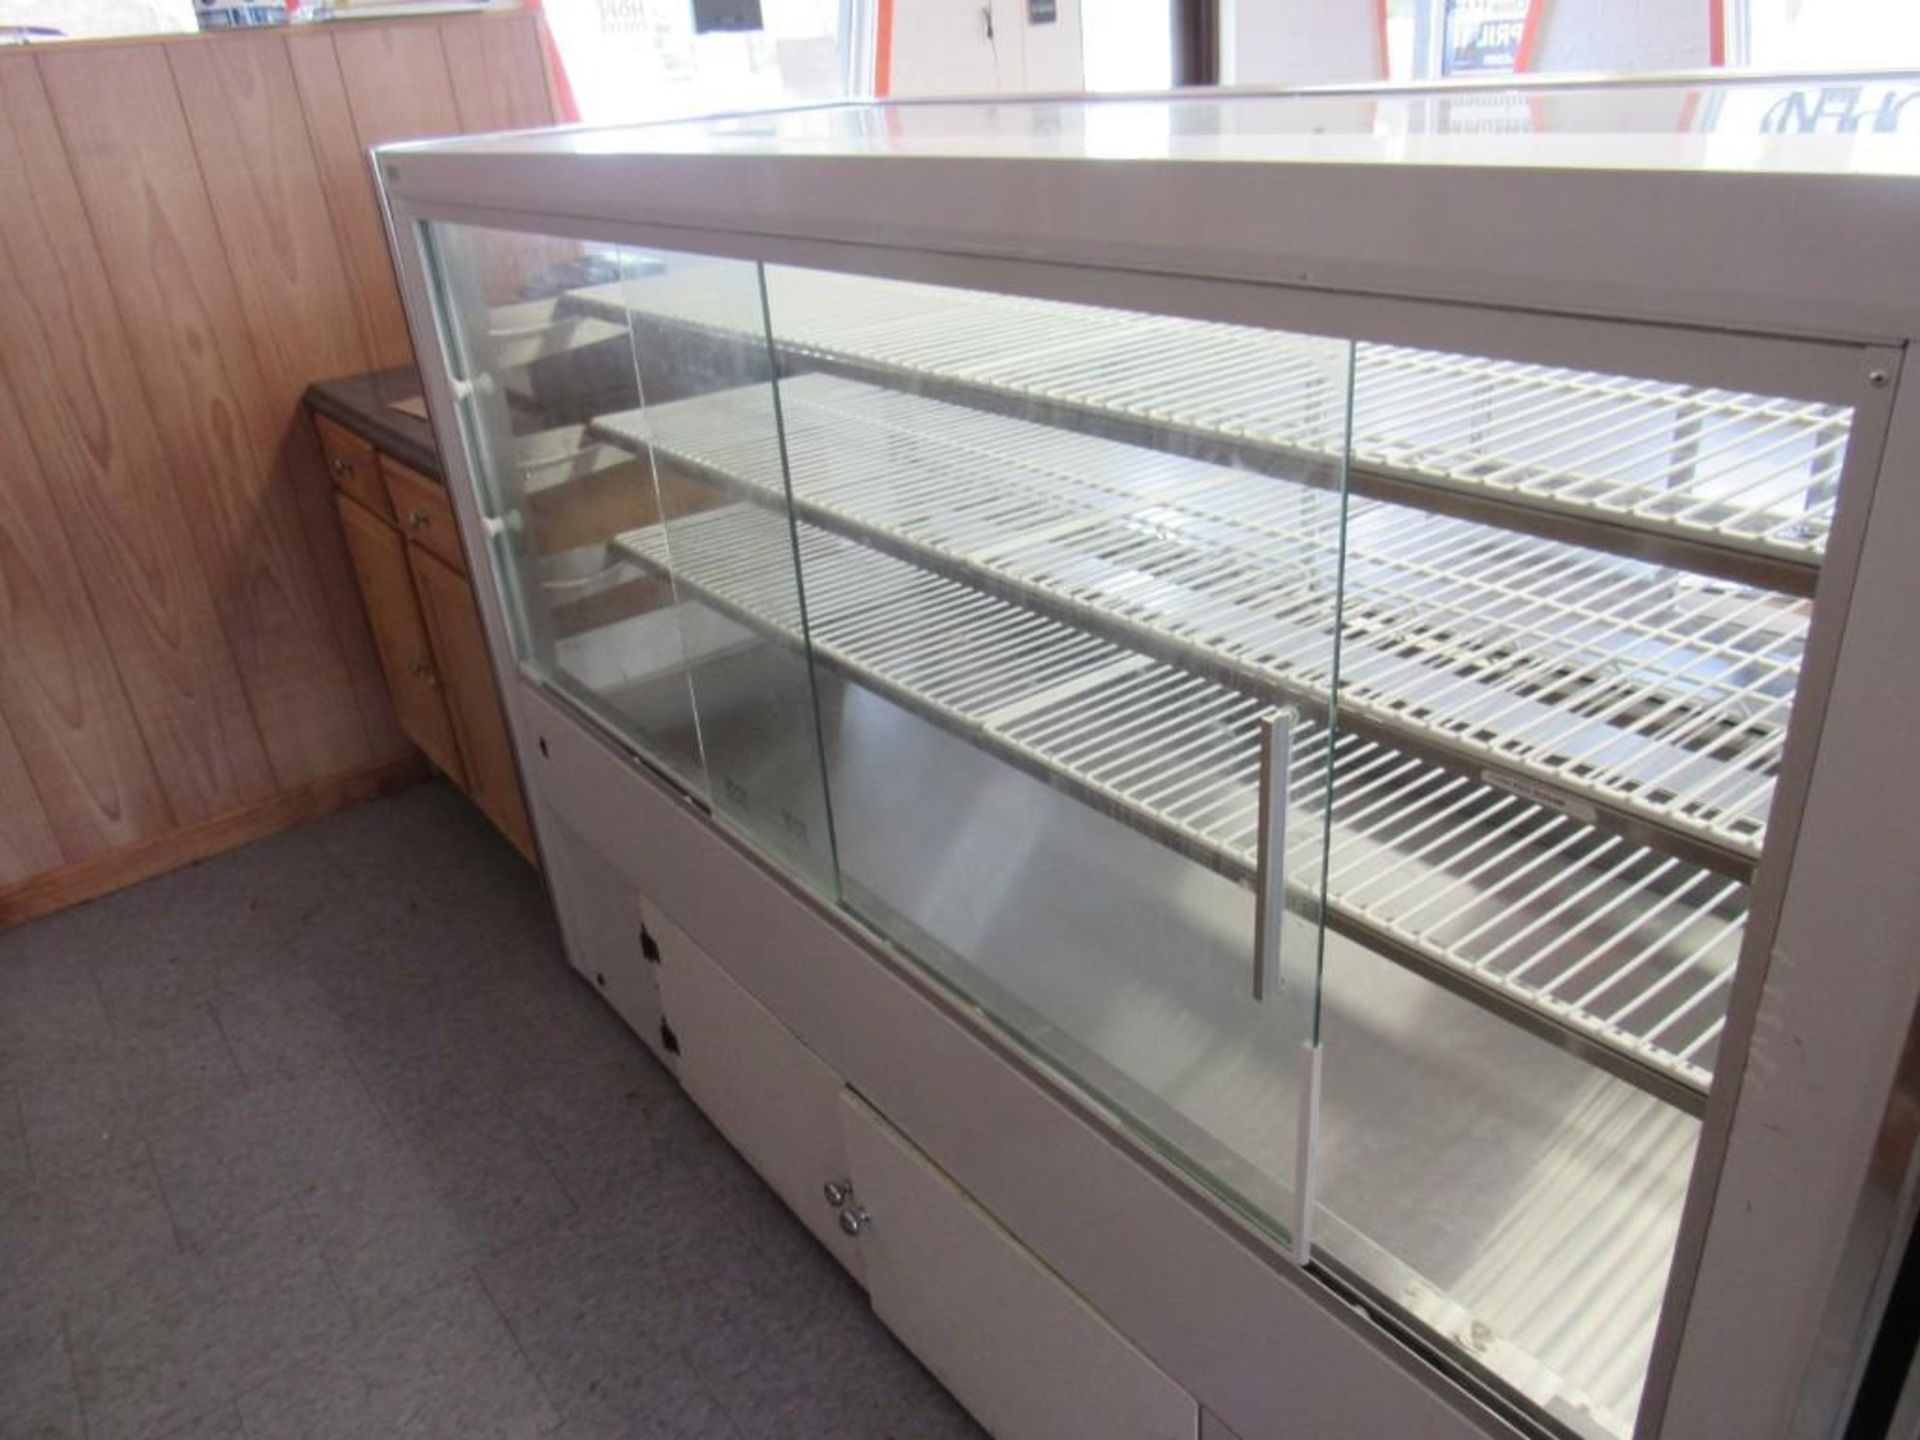 2018 LEADER MANUFACTURING DISPLAY CABINET - Image 4 of 4